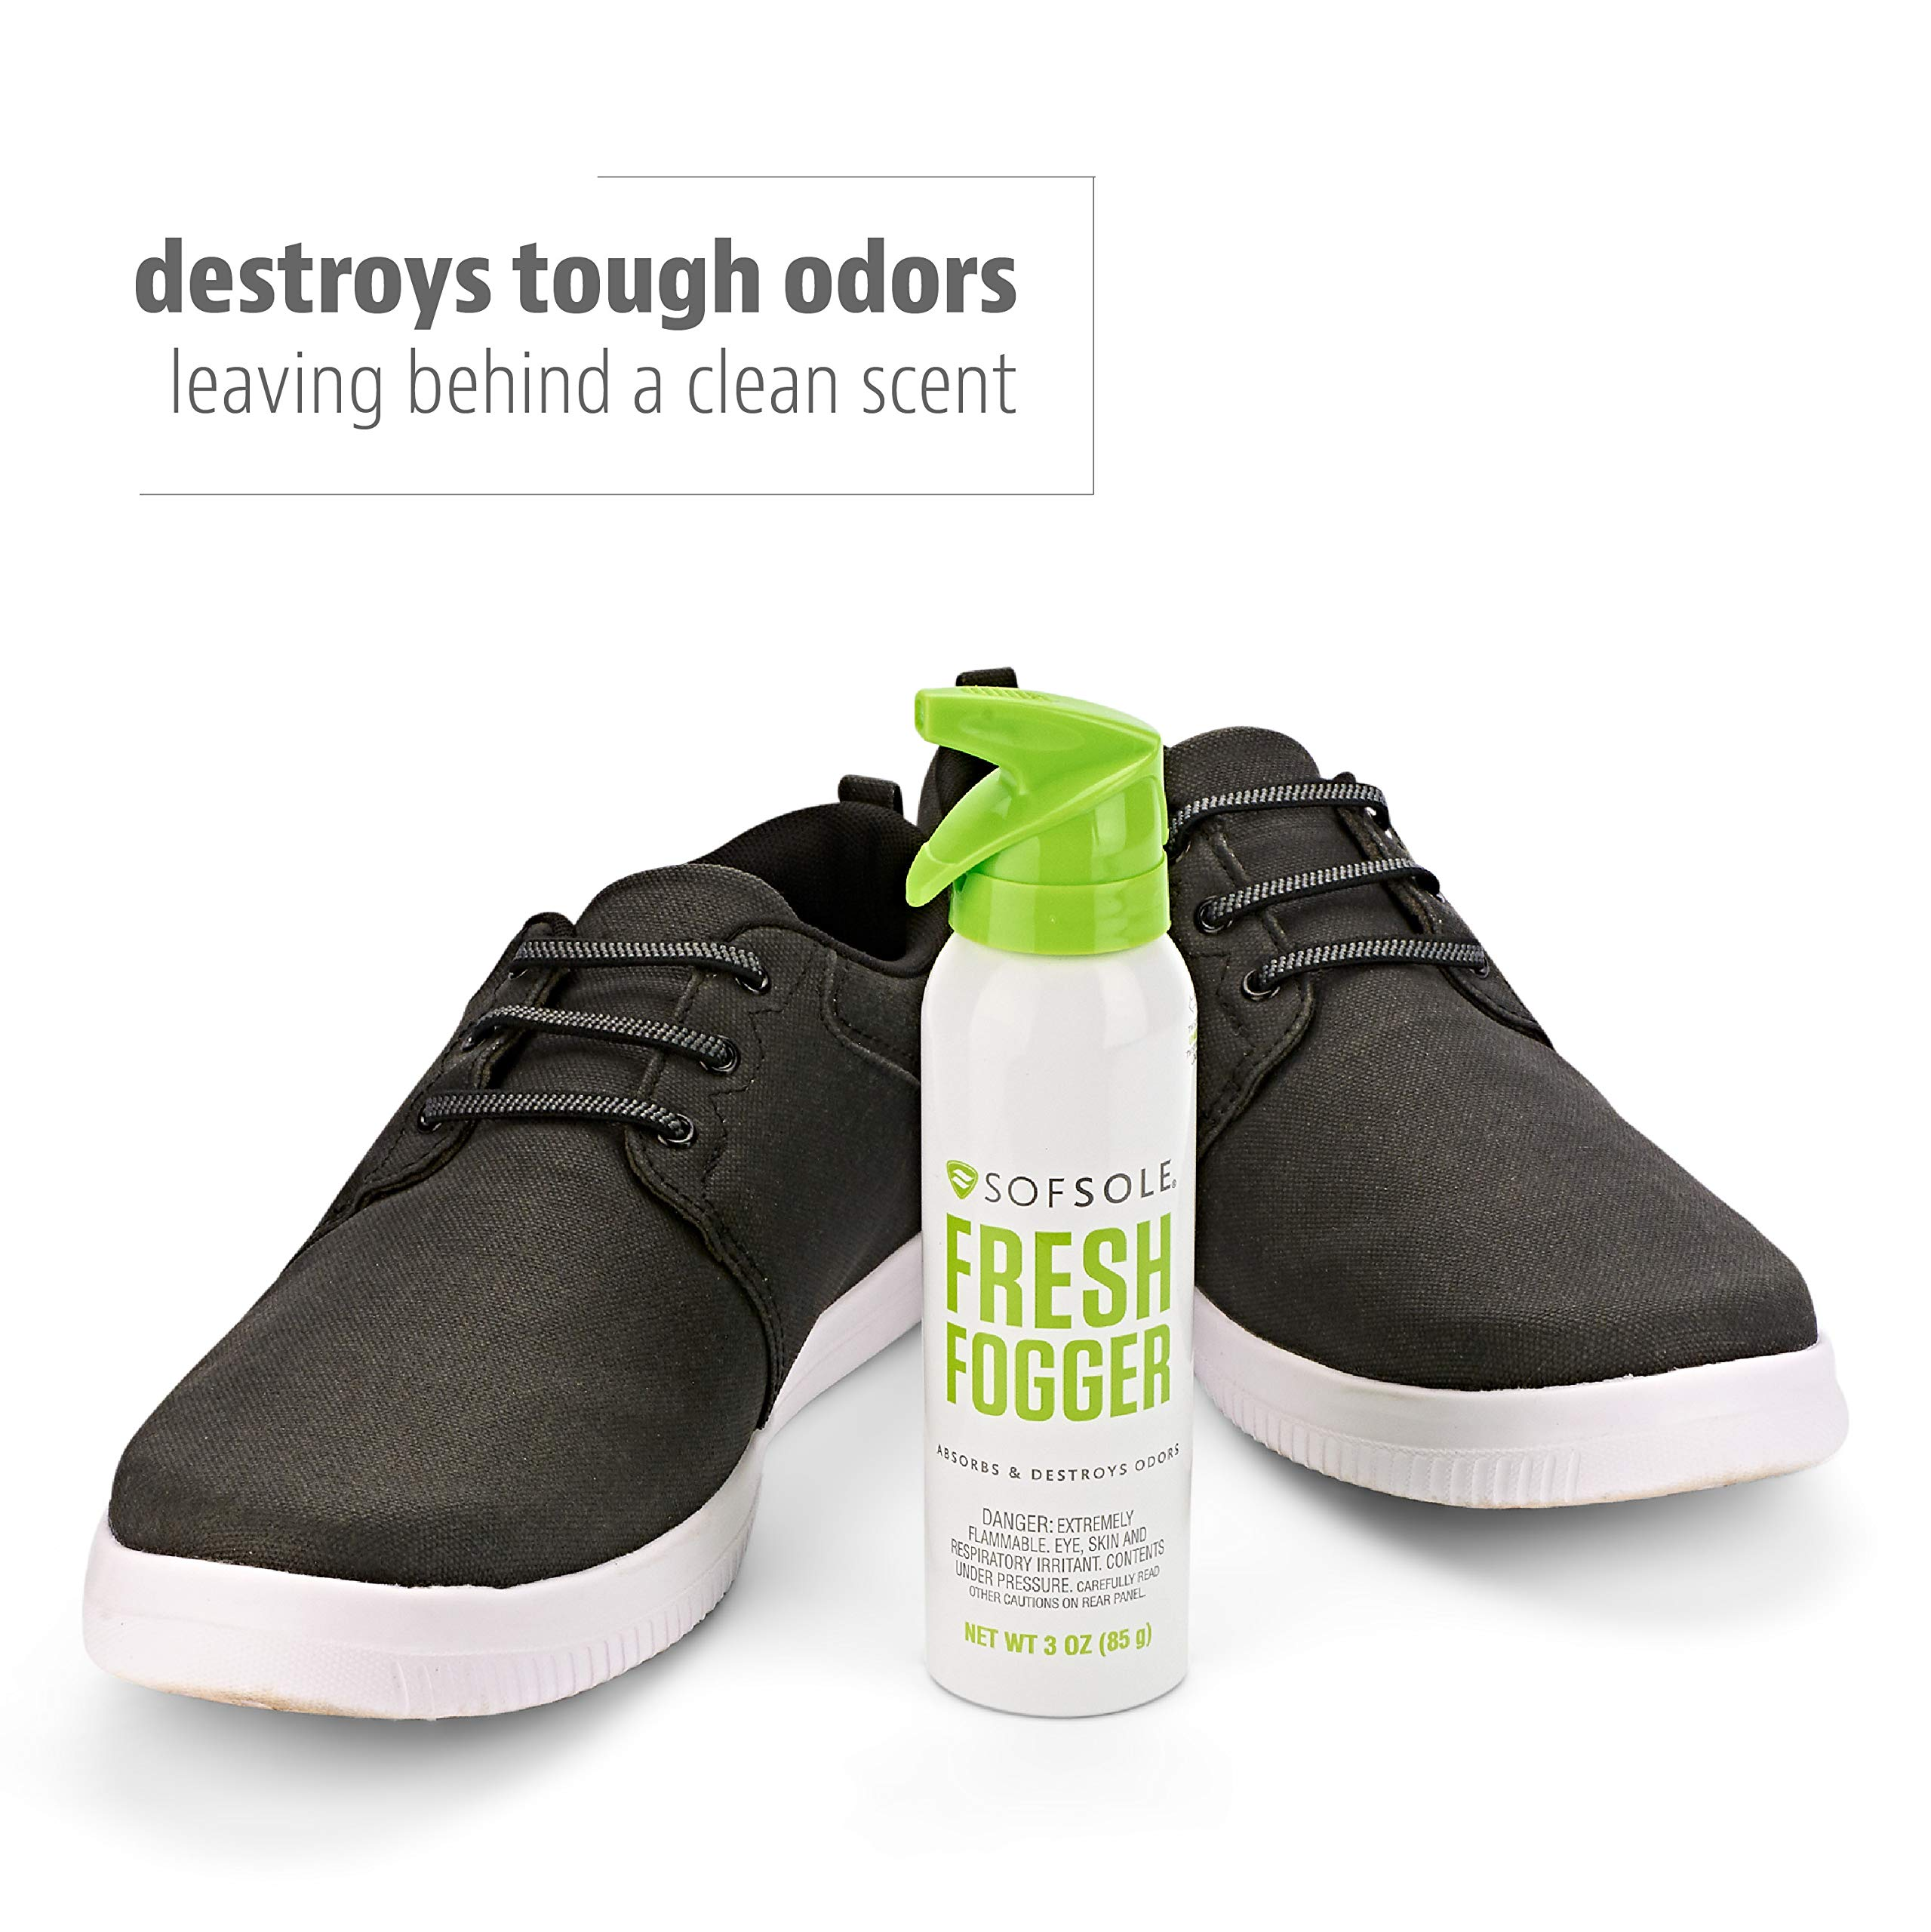 Gym Bag Spray: Sof Sole Fresh Fogger Shoe, Gym Bag, And Locker